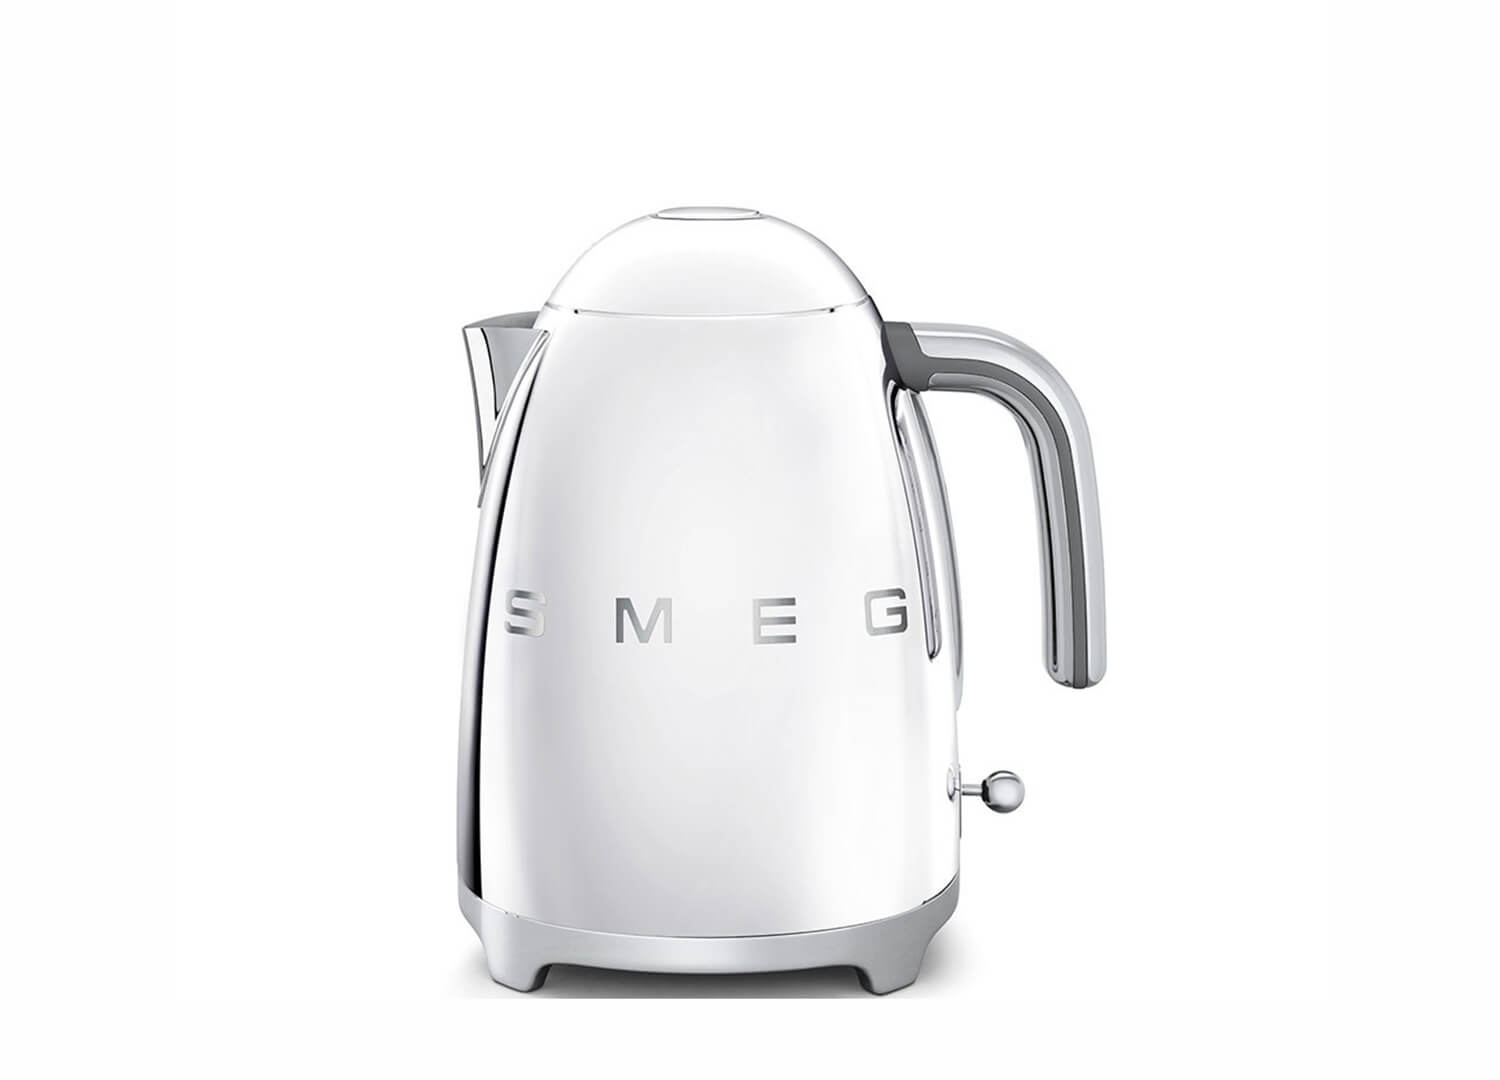 Retro Kettle in Silver | Smeg